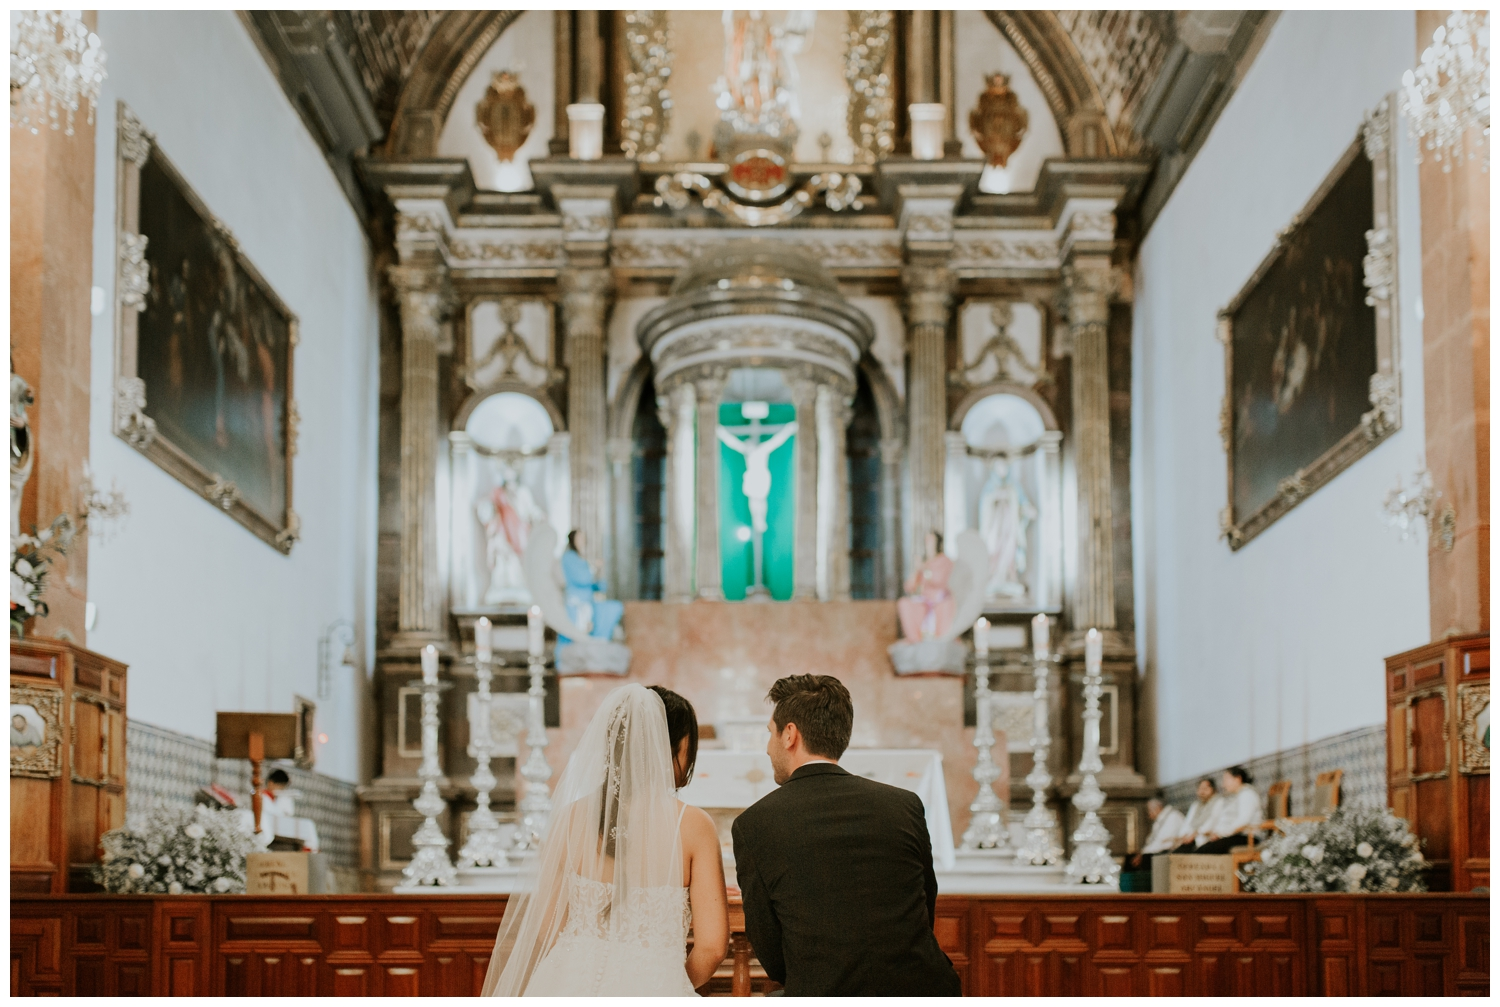 Shane+Sofia, San Miguel de Allende Wedding, Mexico Wedding, Contista Productions Wedding Photography_0078.jpg